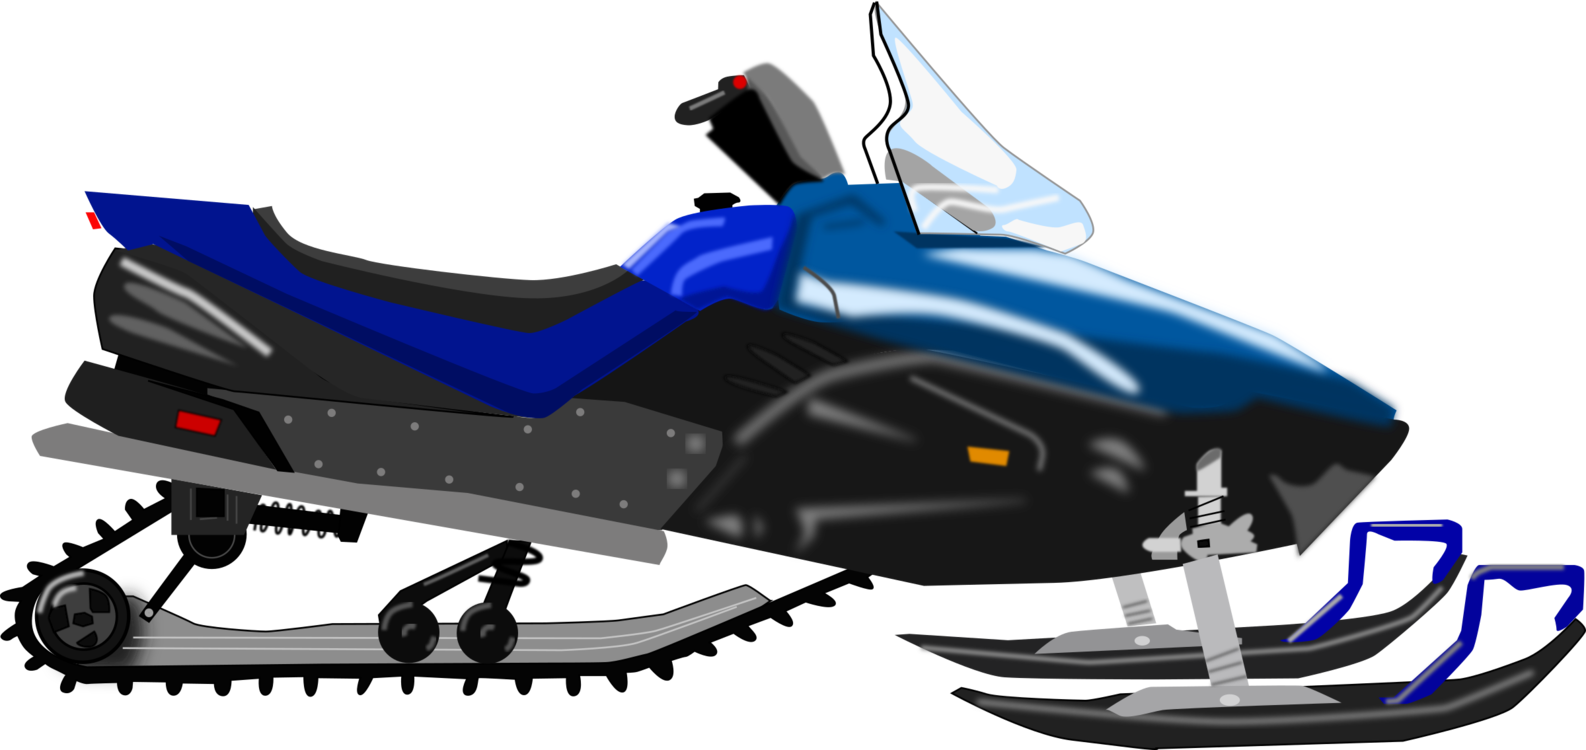 Ski doo clipart graphic free stock Vehicle,Sled,Automotive Design Vector Clipart - Free to ... graphic free stock